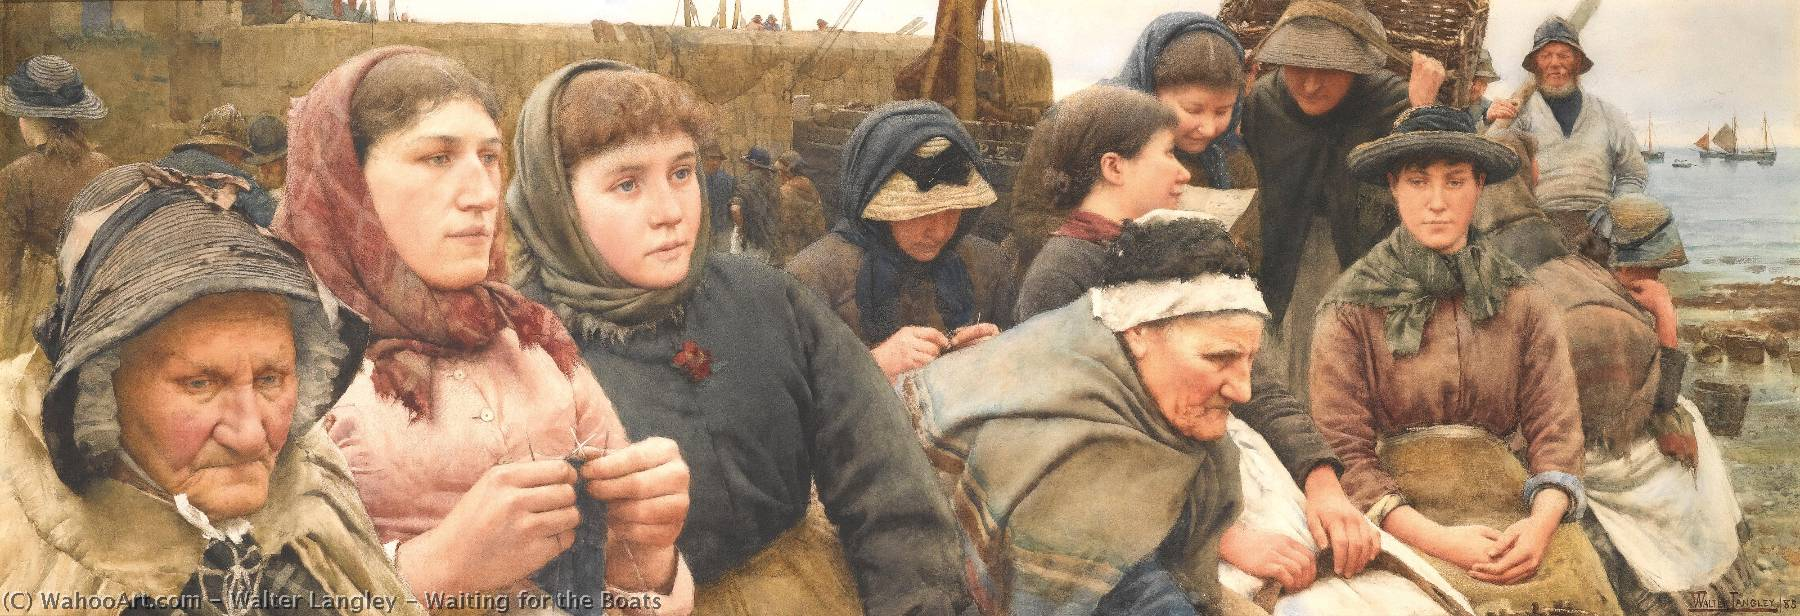 famous painting attendre le bateaux of Walter Langley